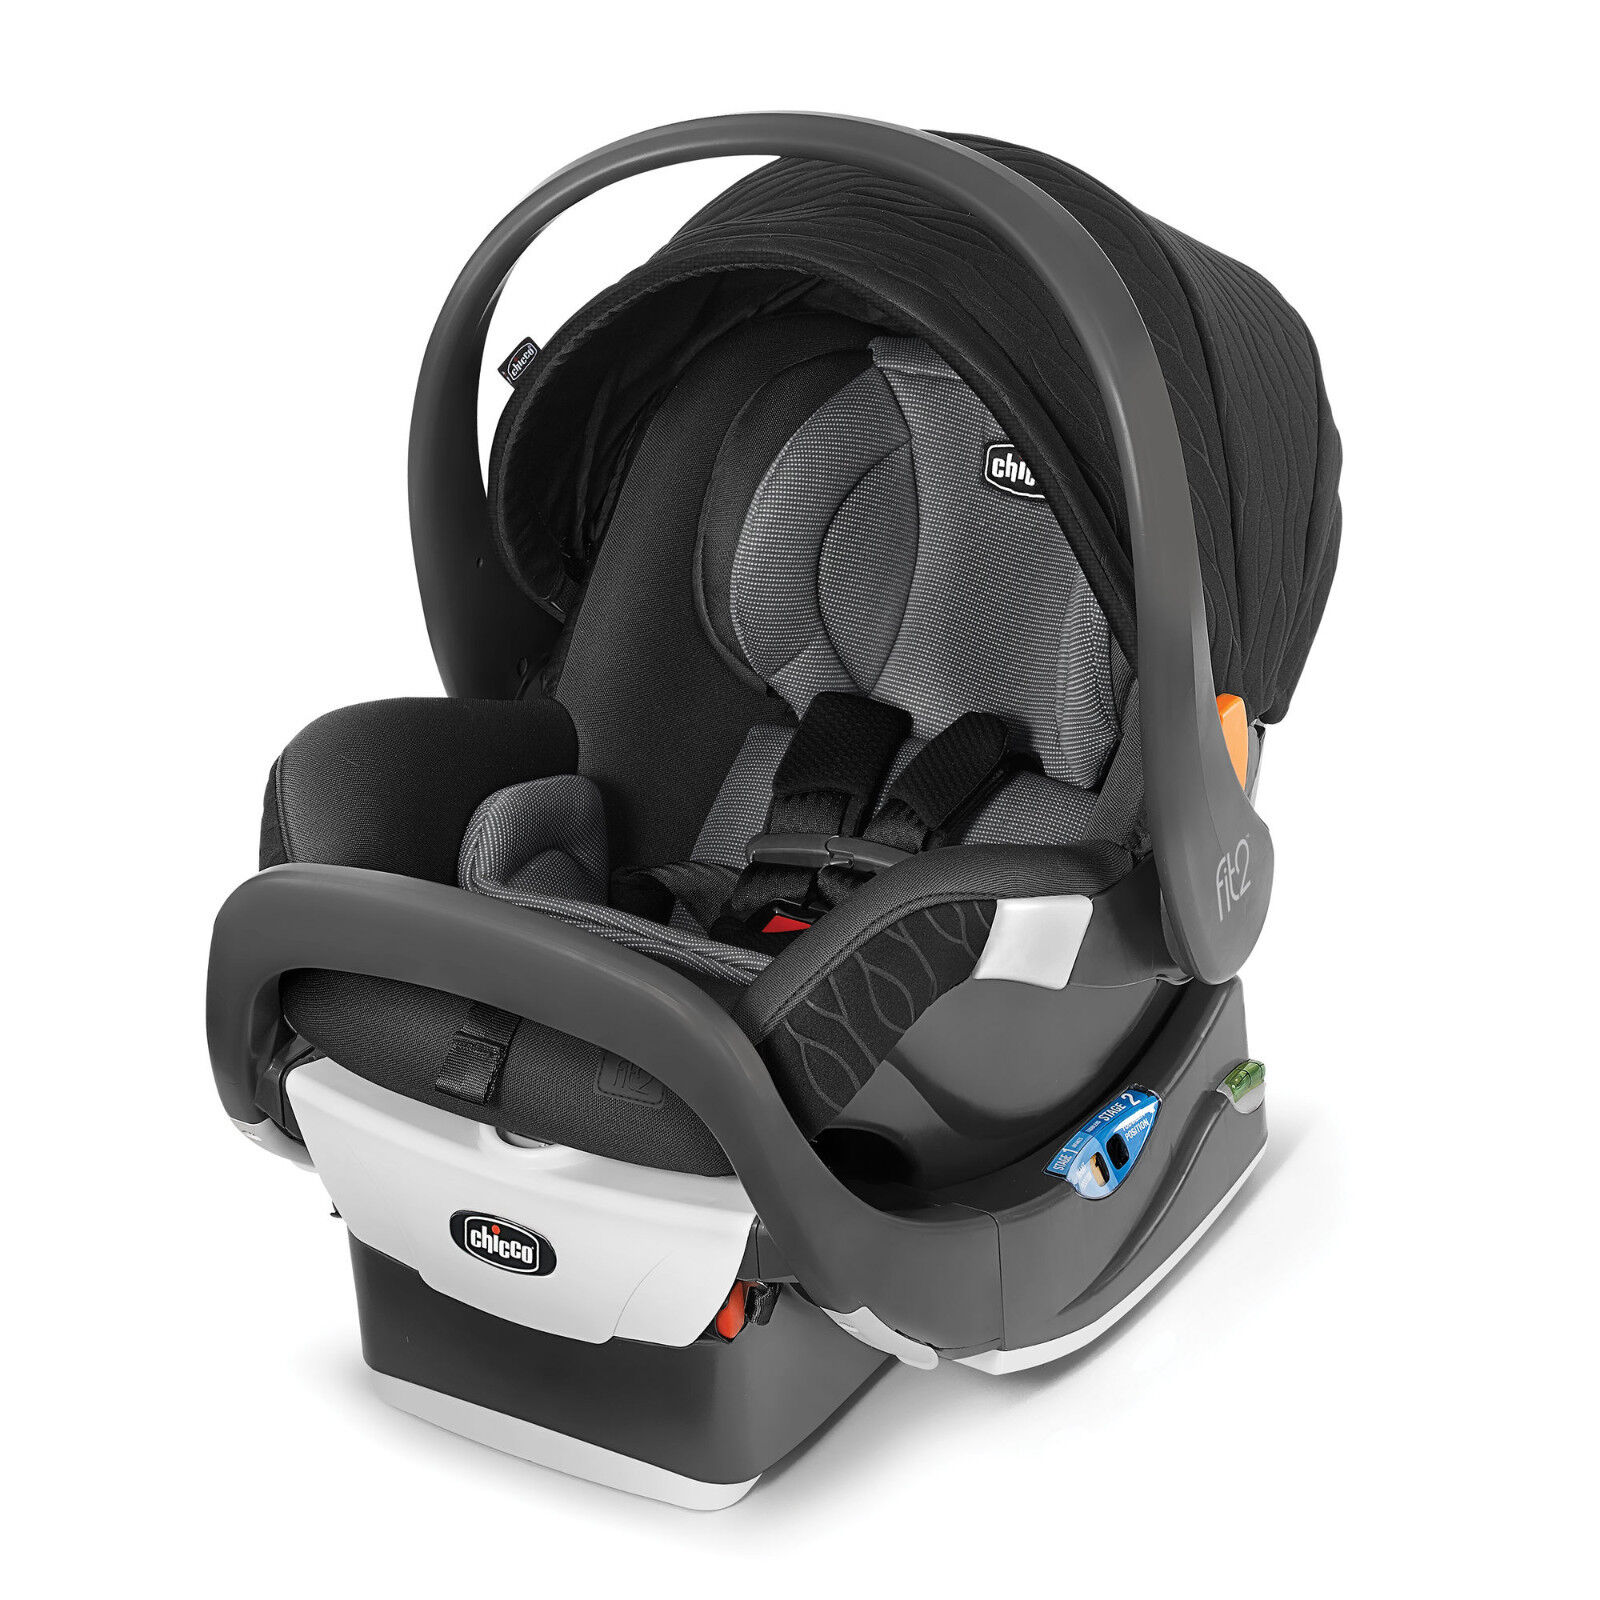 Chicco Fit2 Rear-Facing Infant & Toddler Car Seat - Legato -